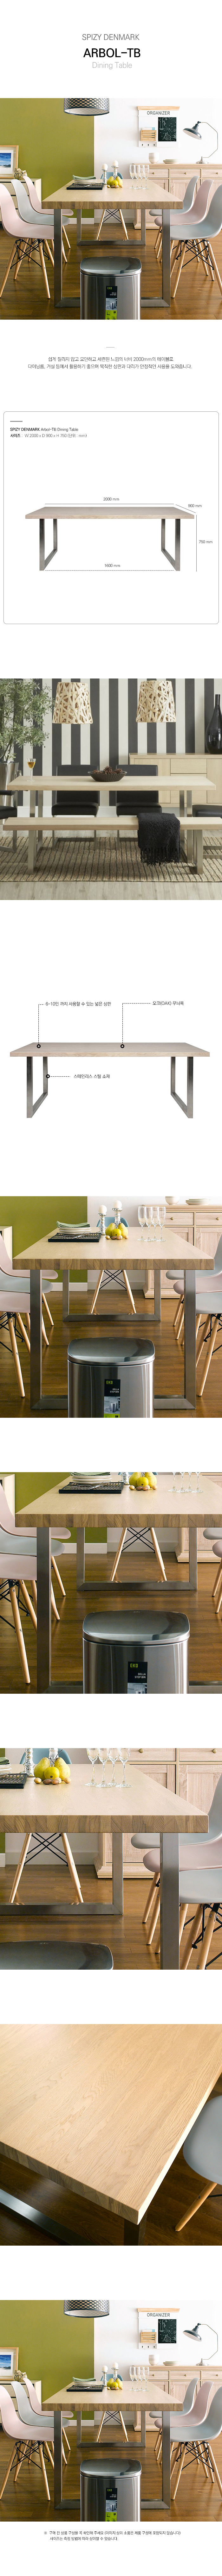 4_8_Arbol_dining_table.jpg